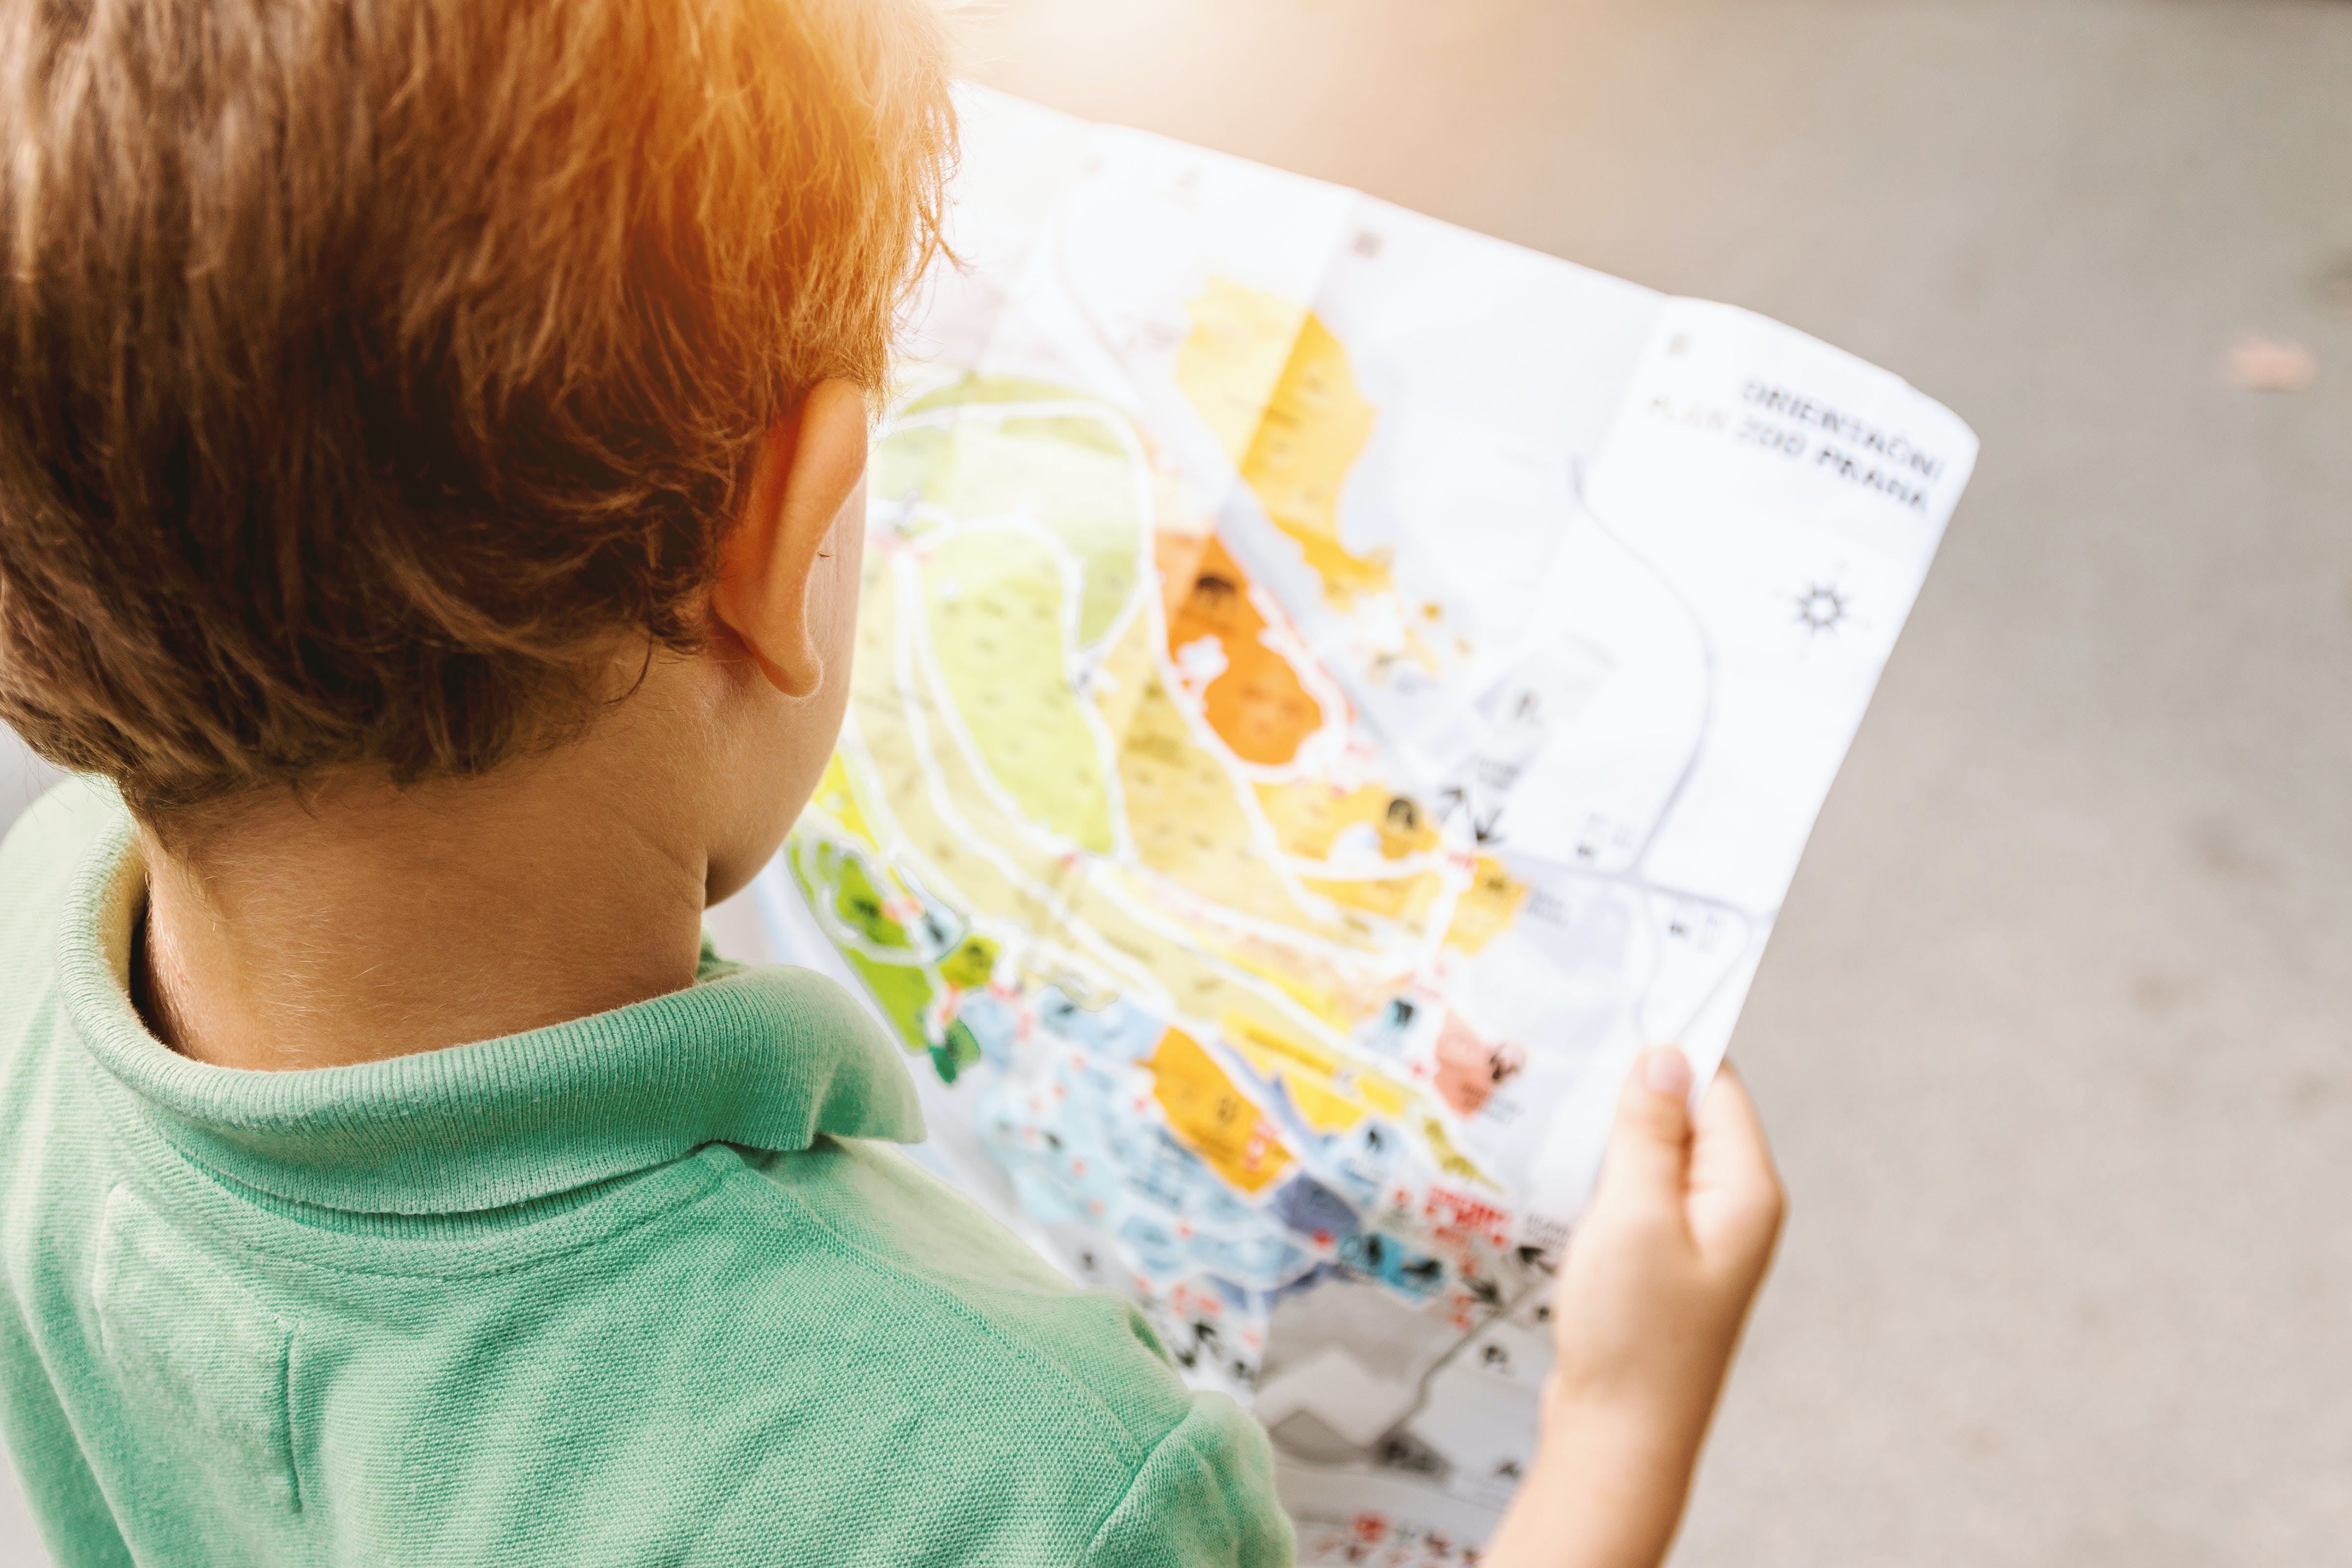 Boy Holding Map on Road